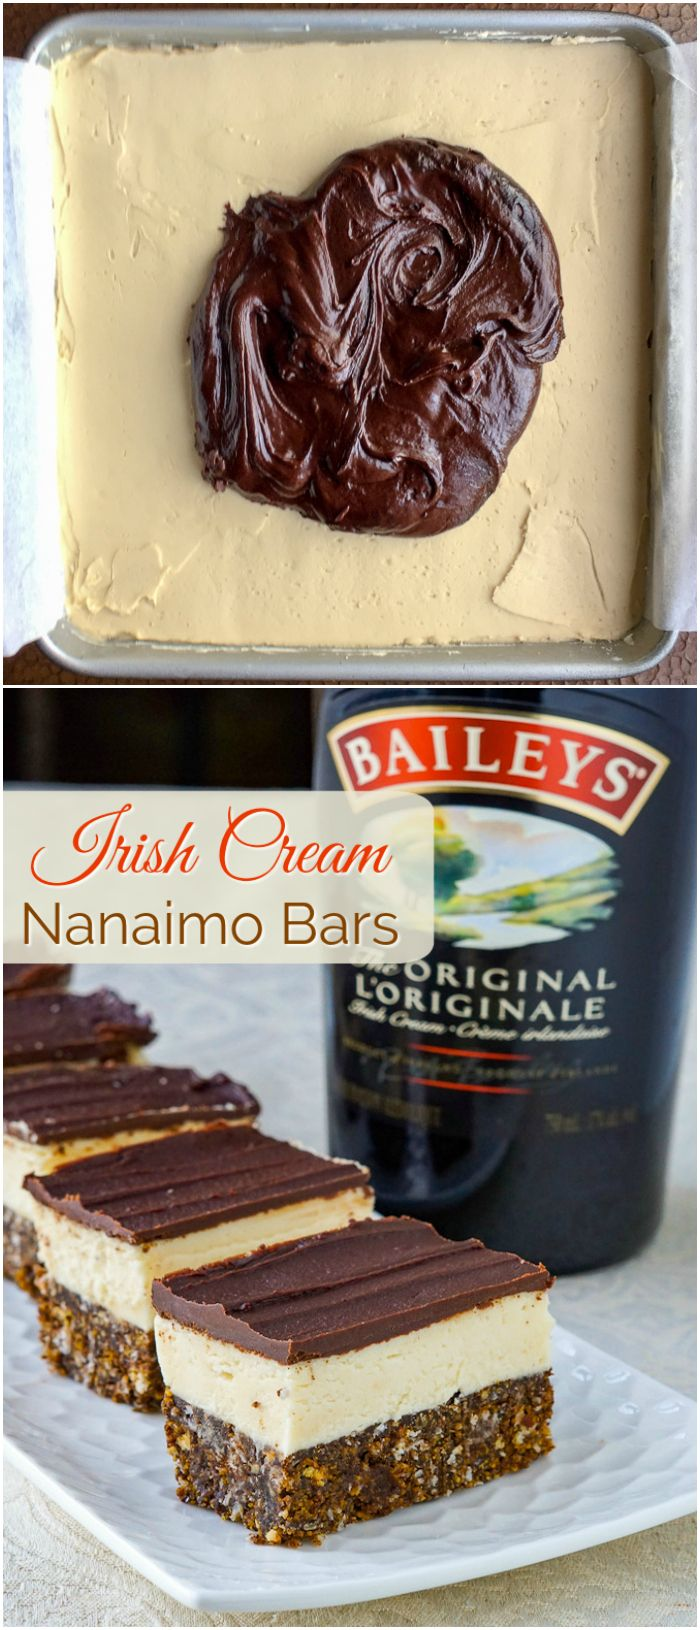 Irish Cream Nanaimo Bars - could this be Bailey's at its best? #RockRecipes100Cookies4Christmas continues with a brand new recipe perfect for the Holiday freezer!